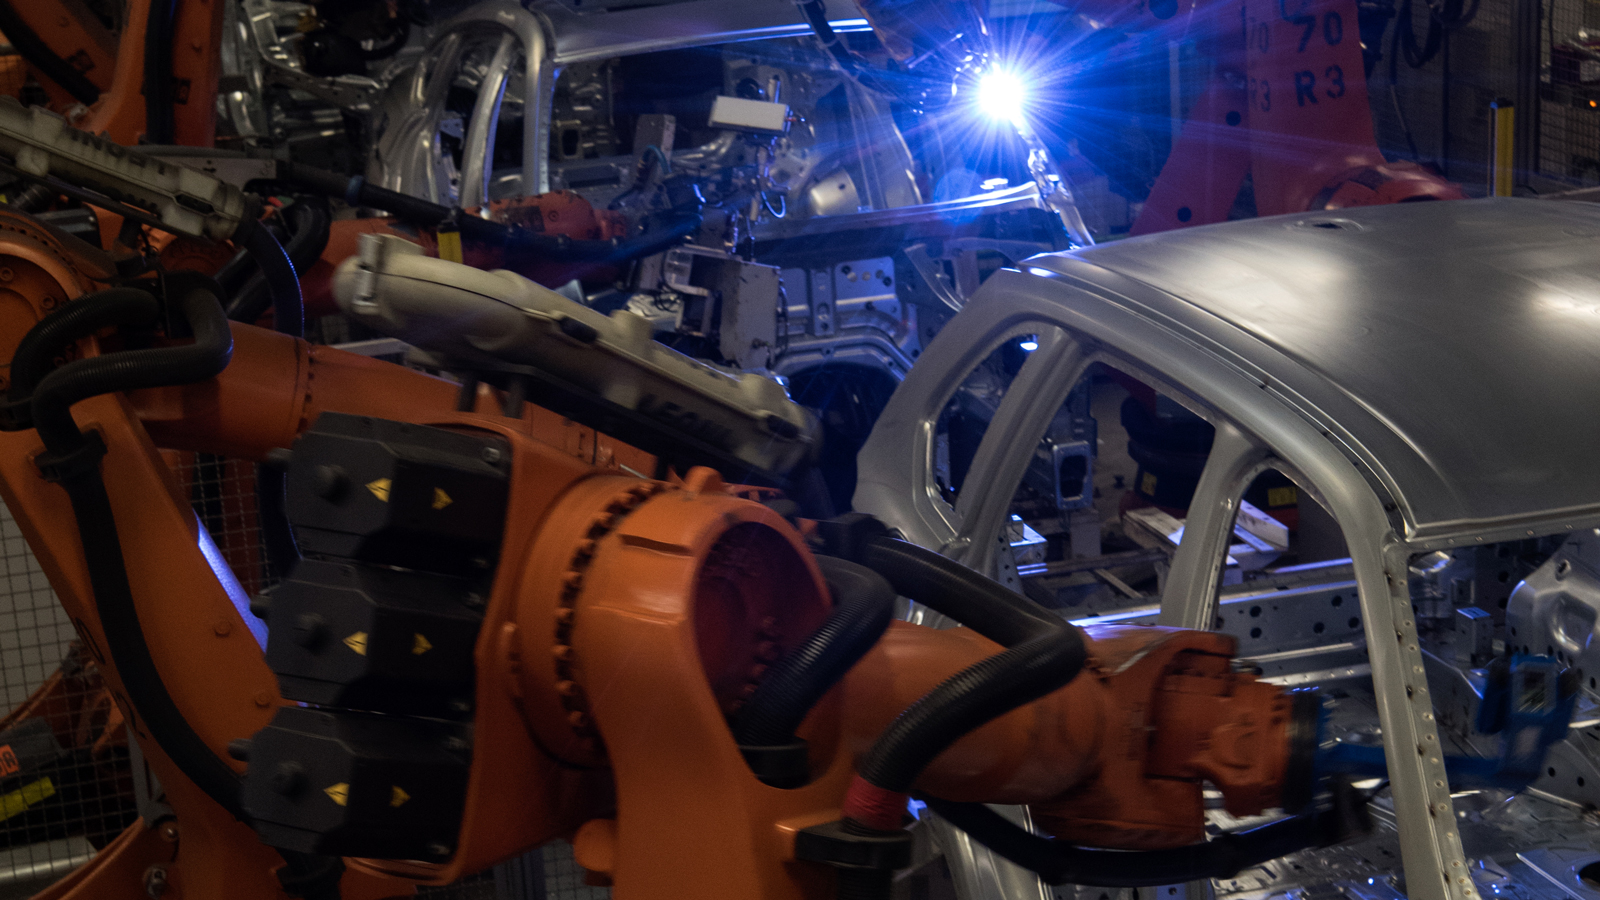 Robot welding in the body shop occurs in large cages to protect workers, who monitor the robots from afar. (4 of 7)